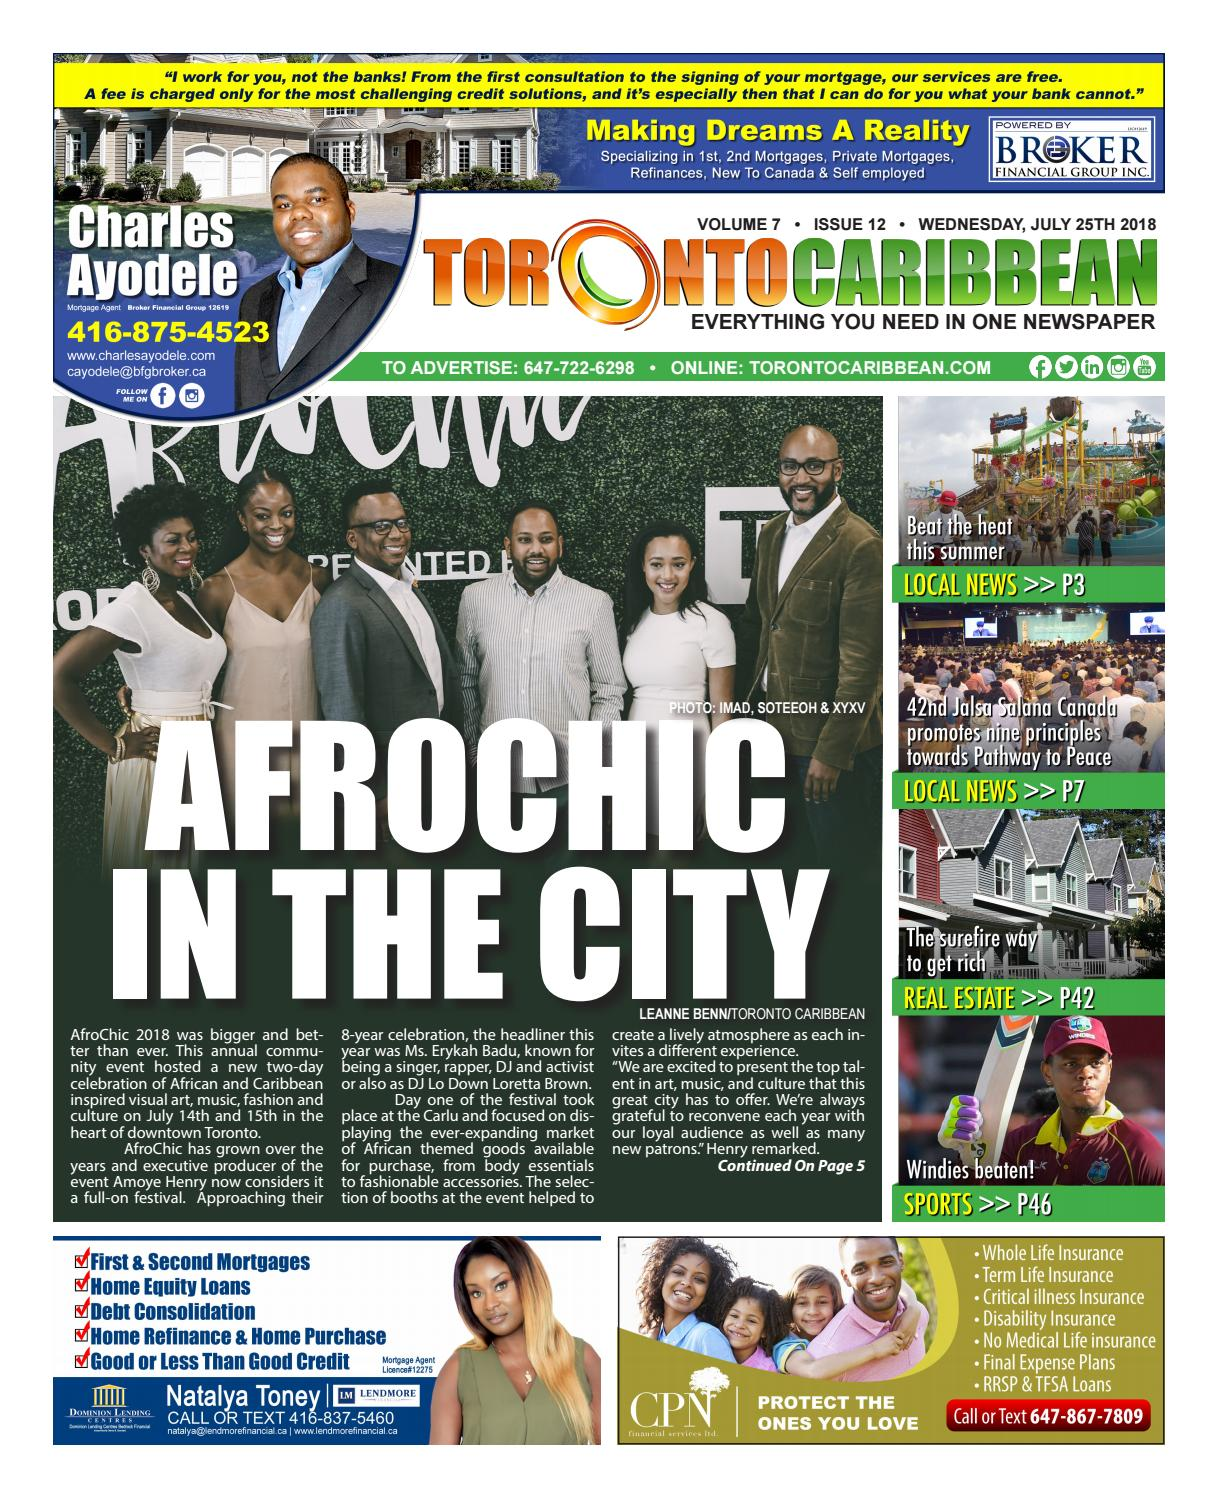 Afrochic In The City 072518 by Toronto Caribbean Newspaper - issuu